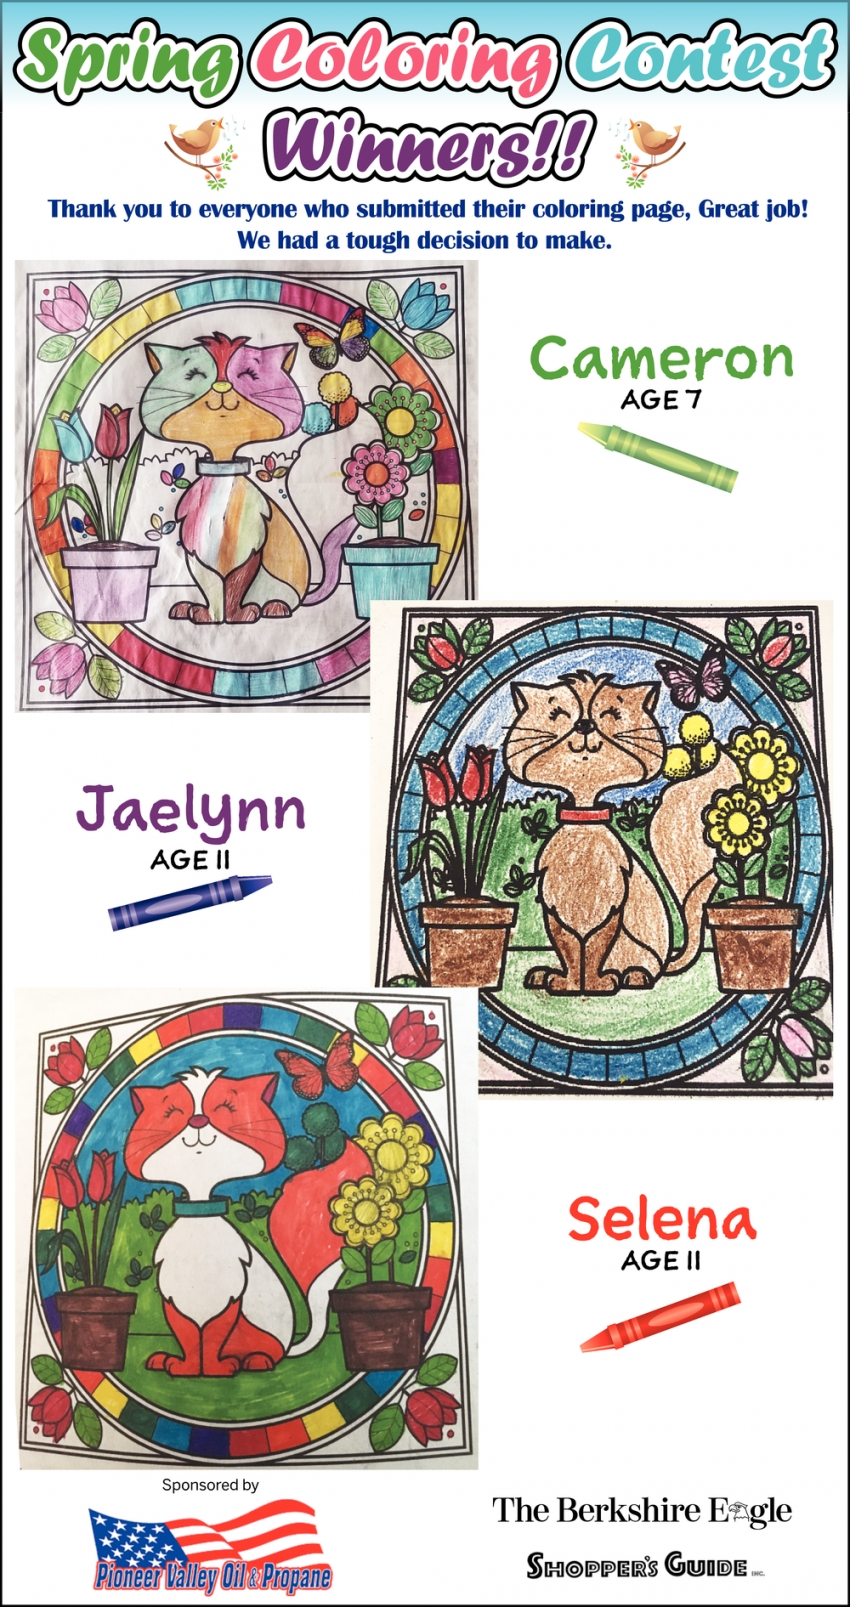 Spring Coloring Contest Winners